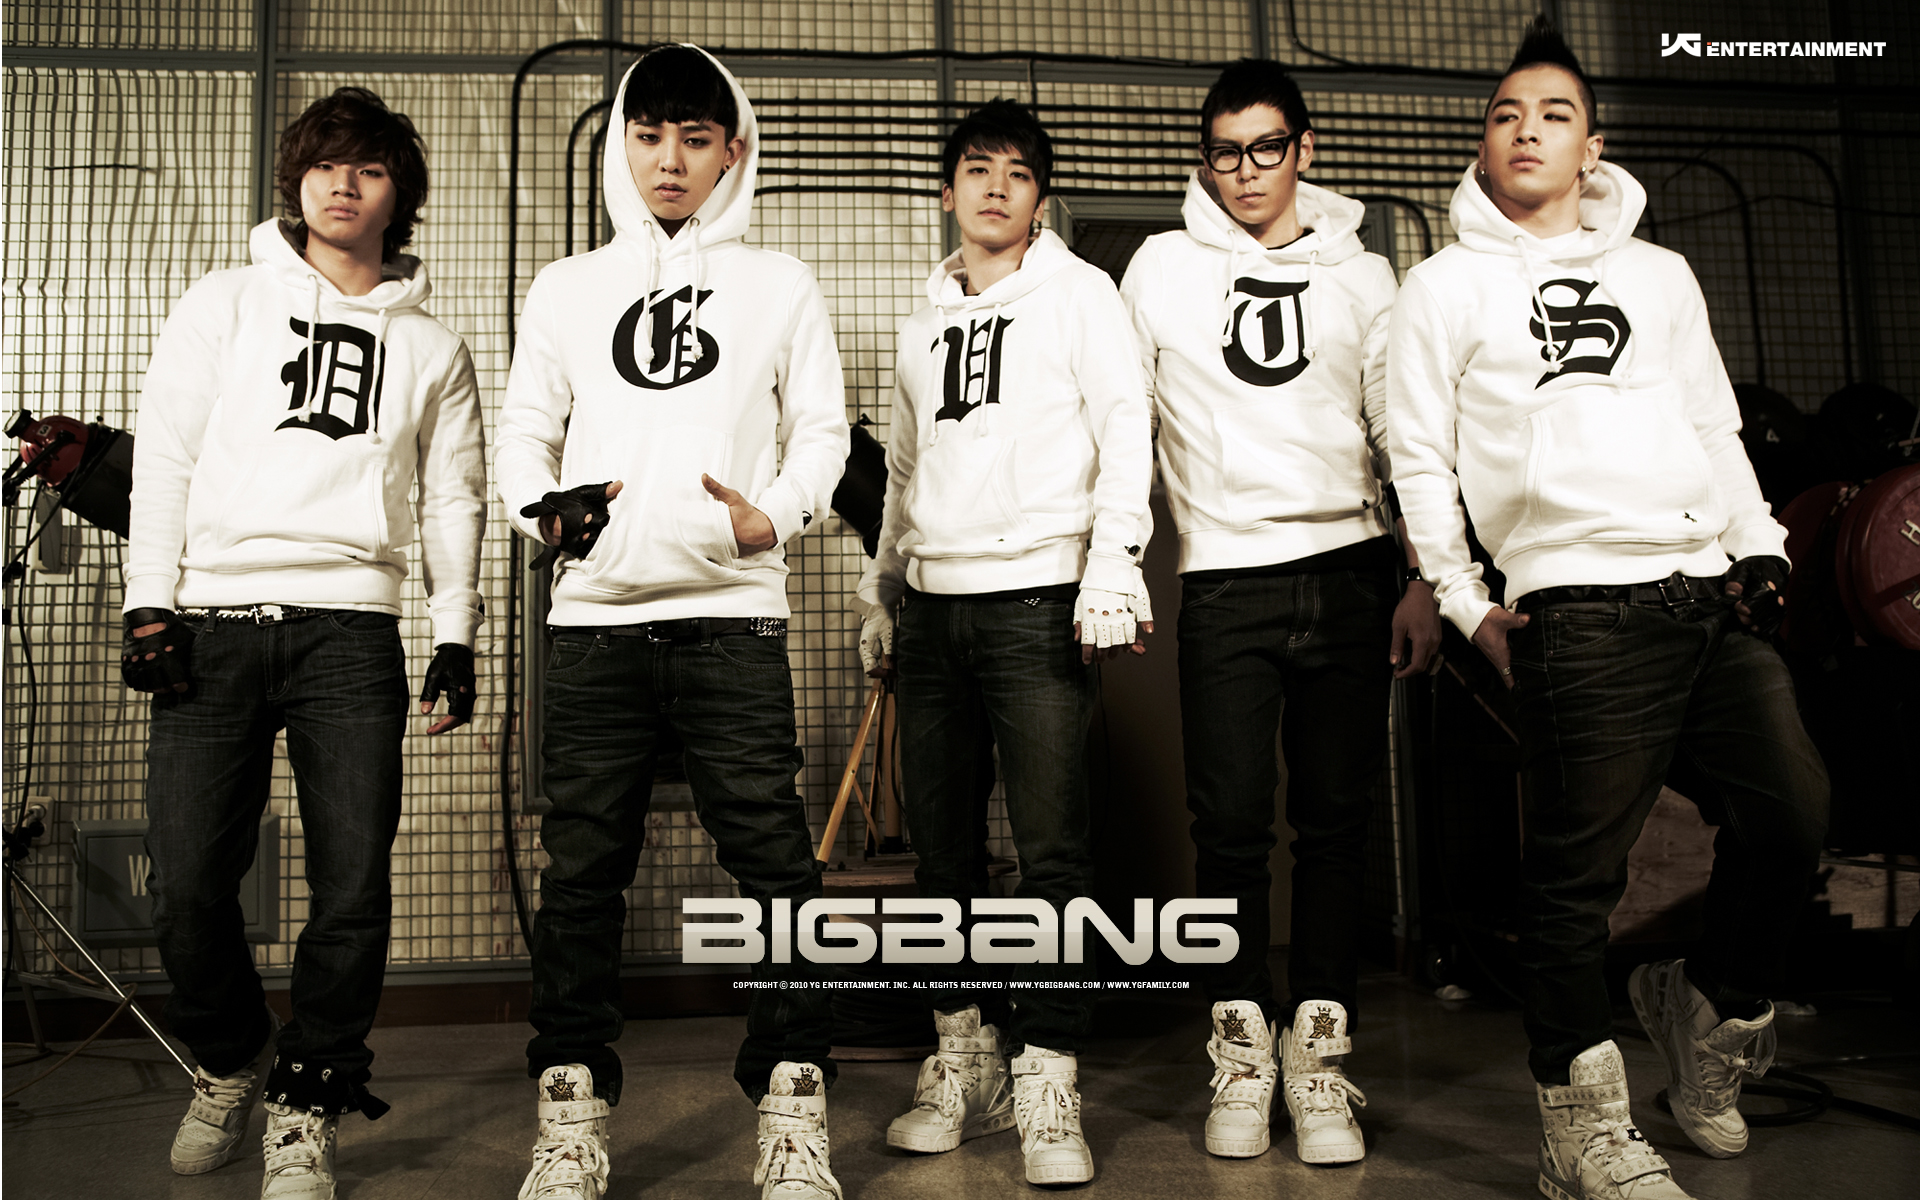 Big Bang Entertainment Wallpaper